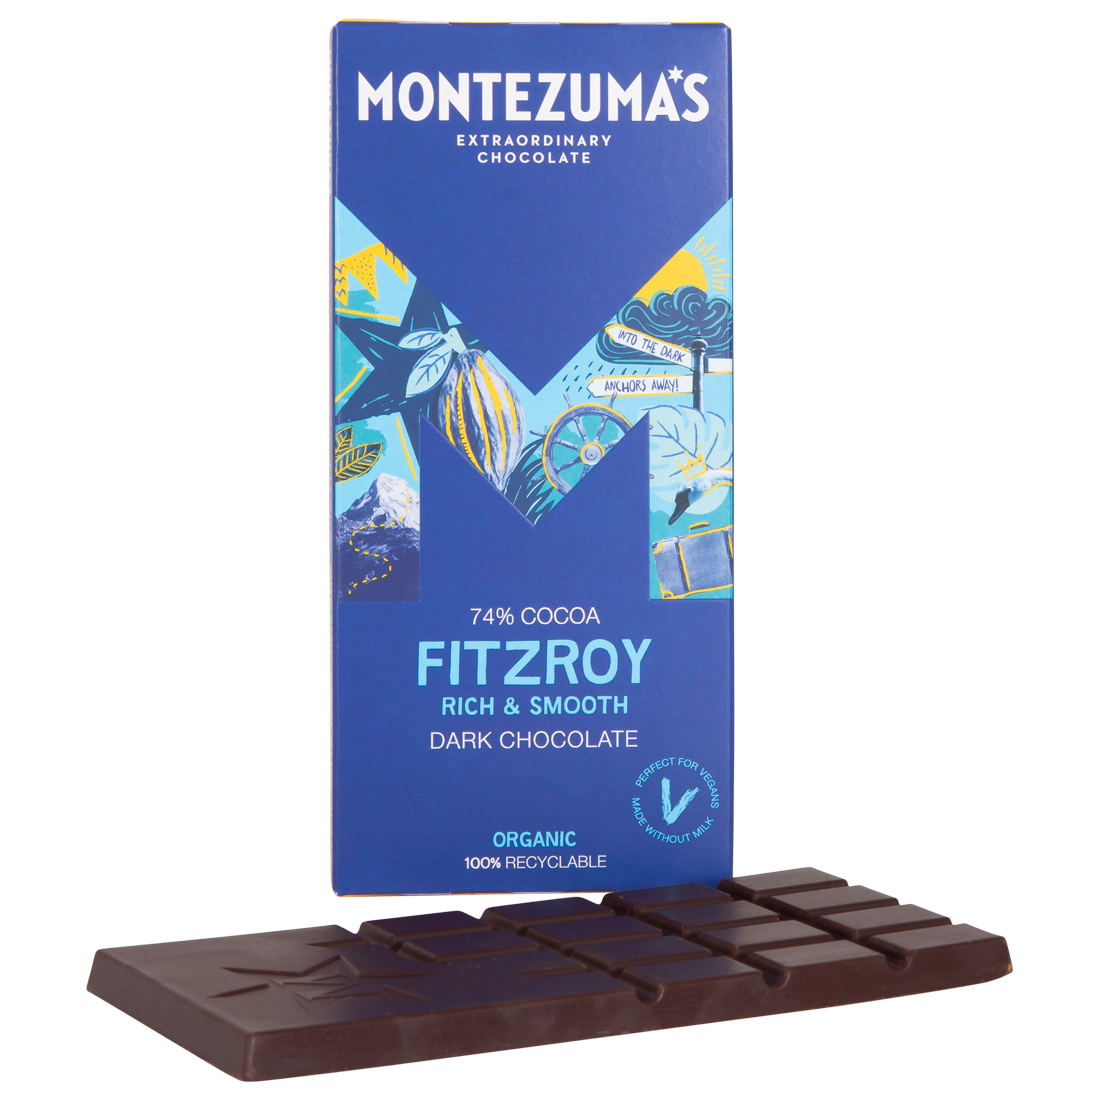 Montezumas 'Fitzroy' Rich & Smooth 74% Dark Organic Chocolate